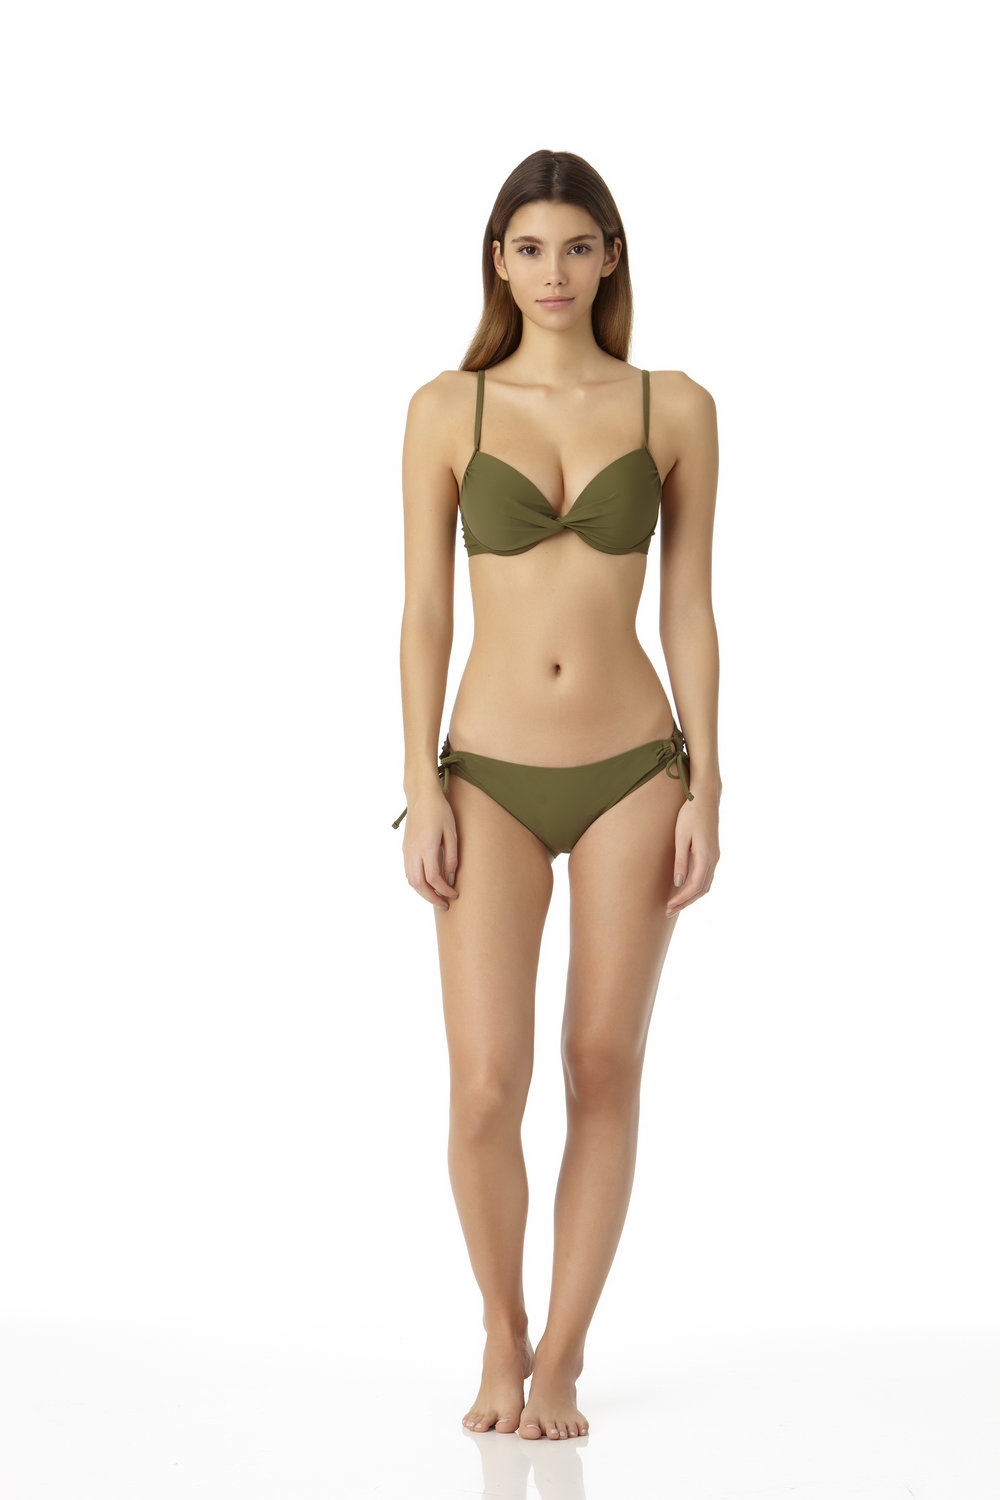 STYLE # CBC07342TL/ CBC07510B - Twist Front Underwire Bikini TopCOMING SOON TO WALMARTSide Tie Scoop BottomCOMING SOON TO WALMART